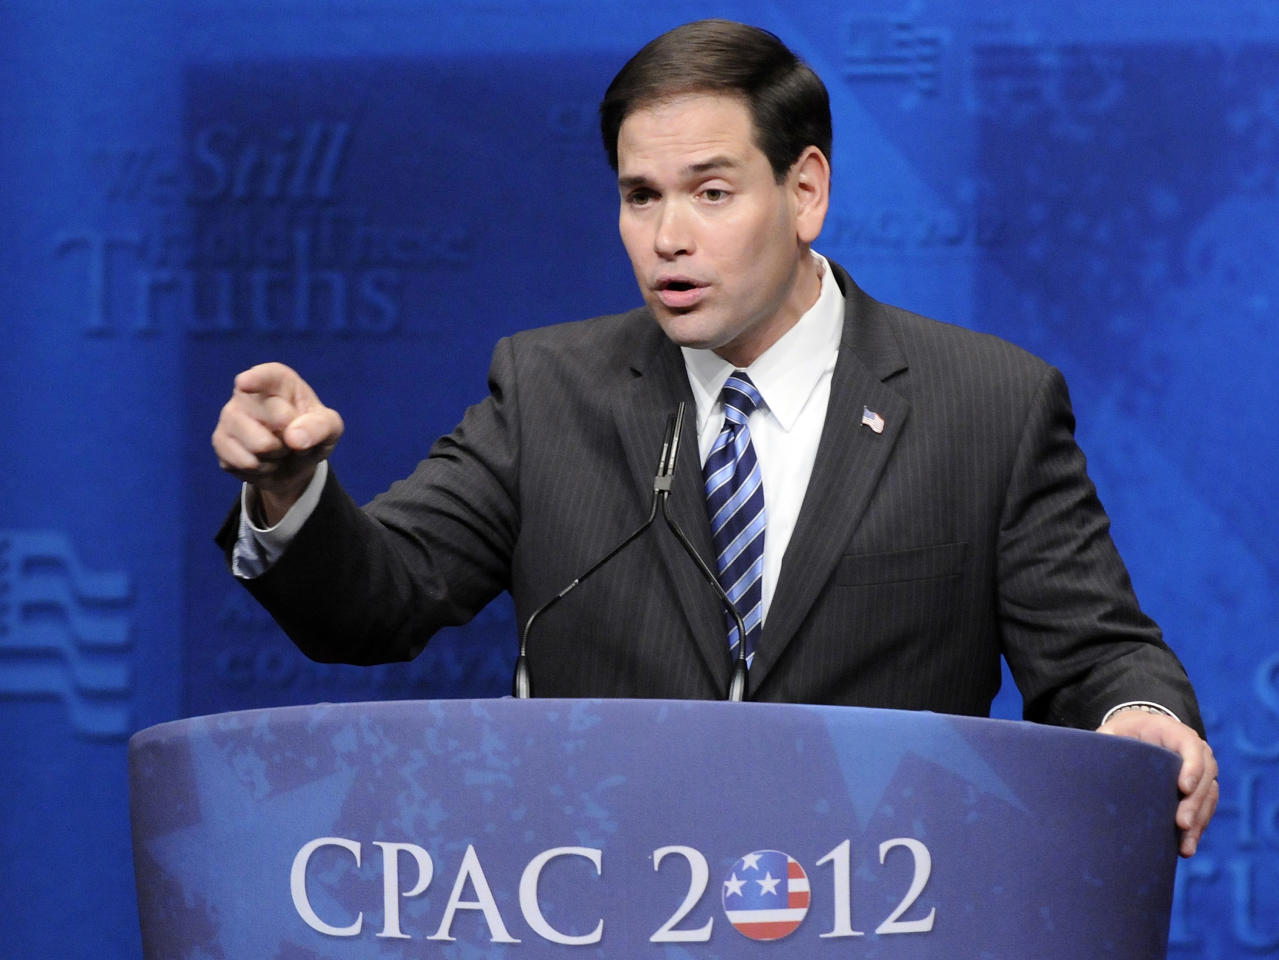 U.S. Senator Marco Rubio (R-FL) addresses the American Conservative Union's annual Conservative Political Action Conference (CPAC) in Washington, February 9, 2012.  REUTERS/Jonathan Ernst